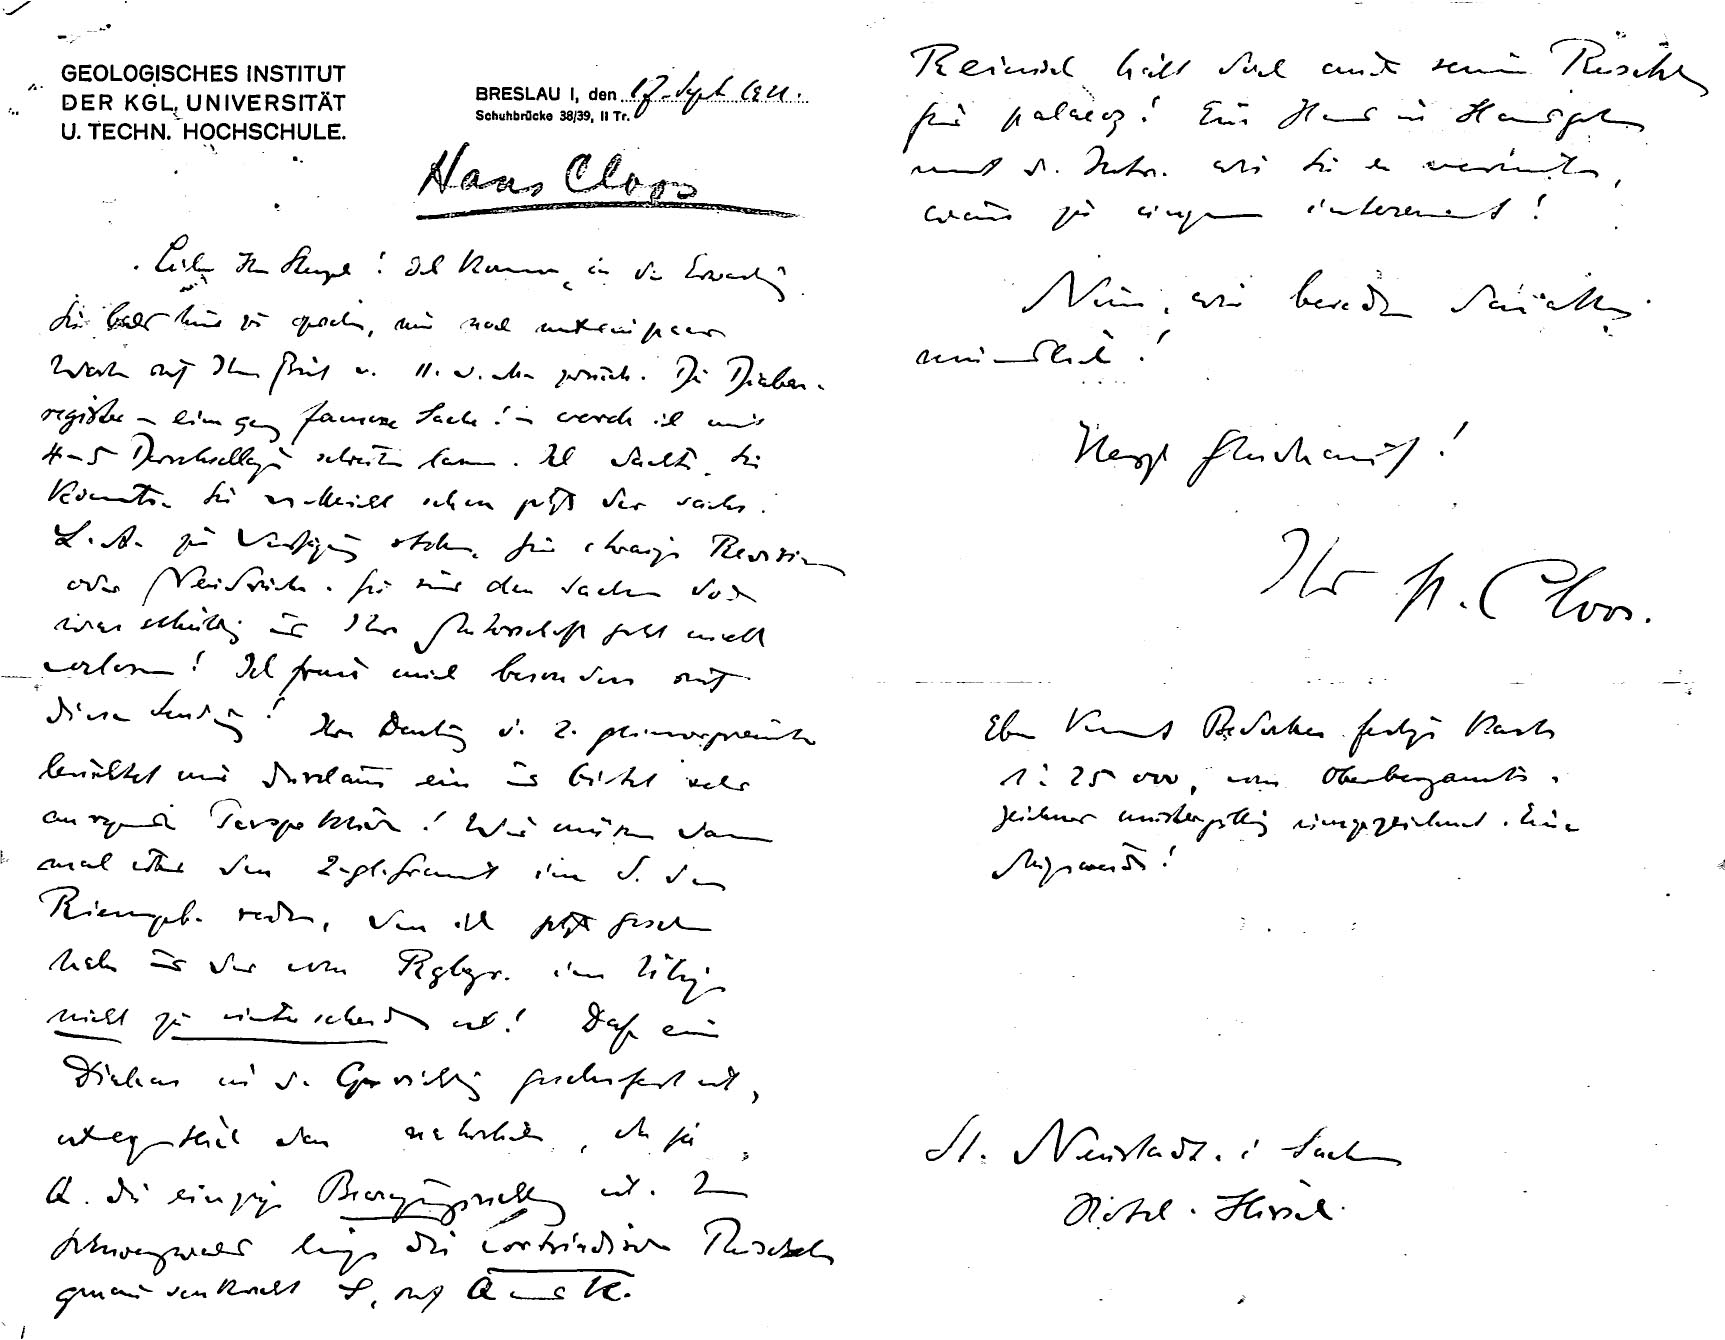 Letter to H.B. Stenzel from Hans E. Cloos on 1921-09-12.